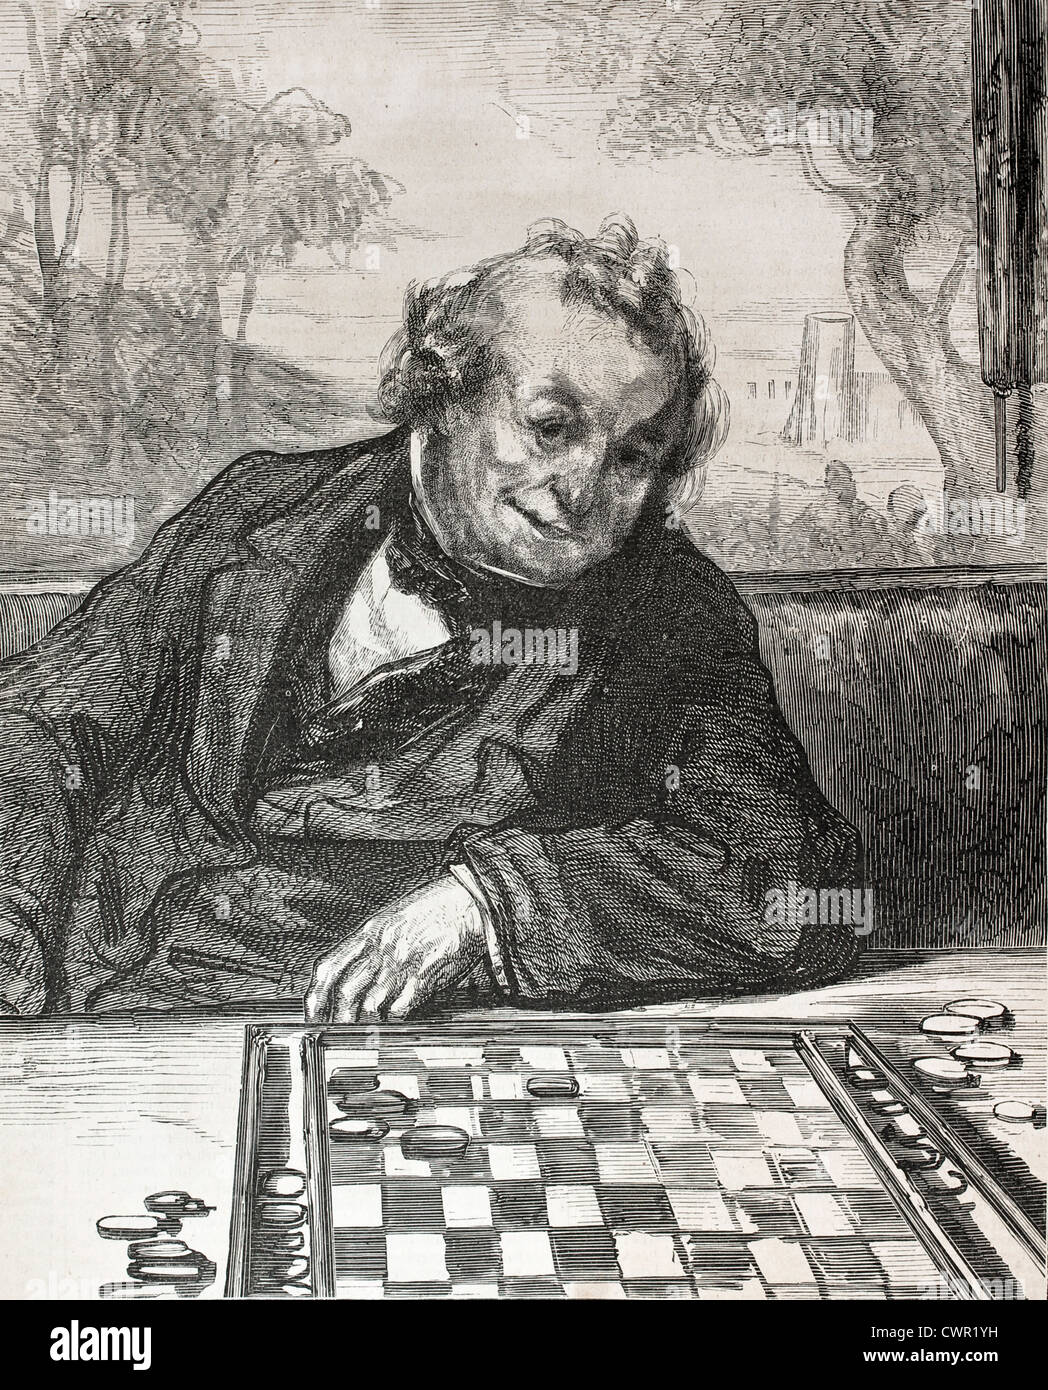 Draughts player - Stock Image